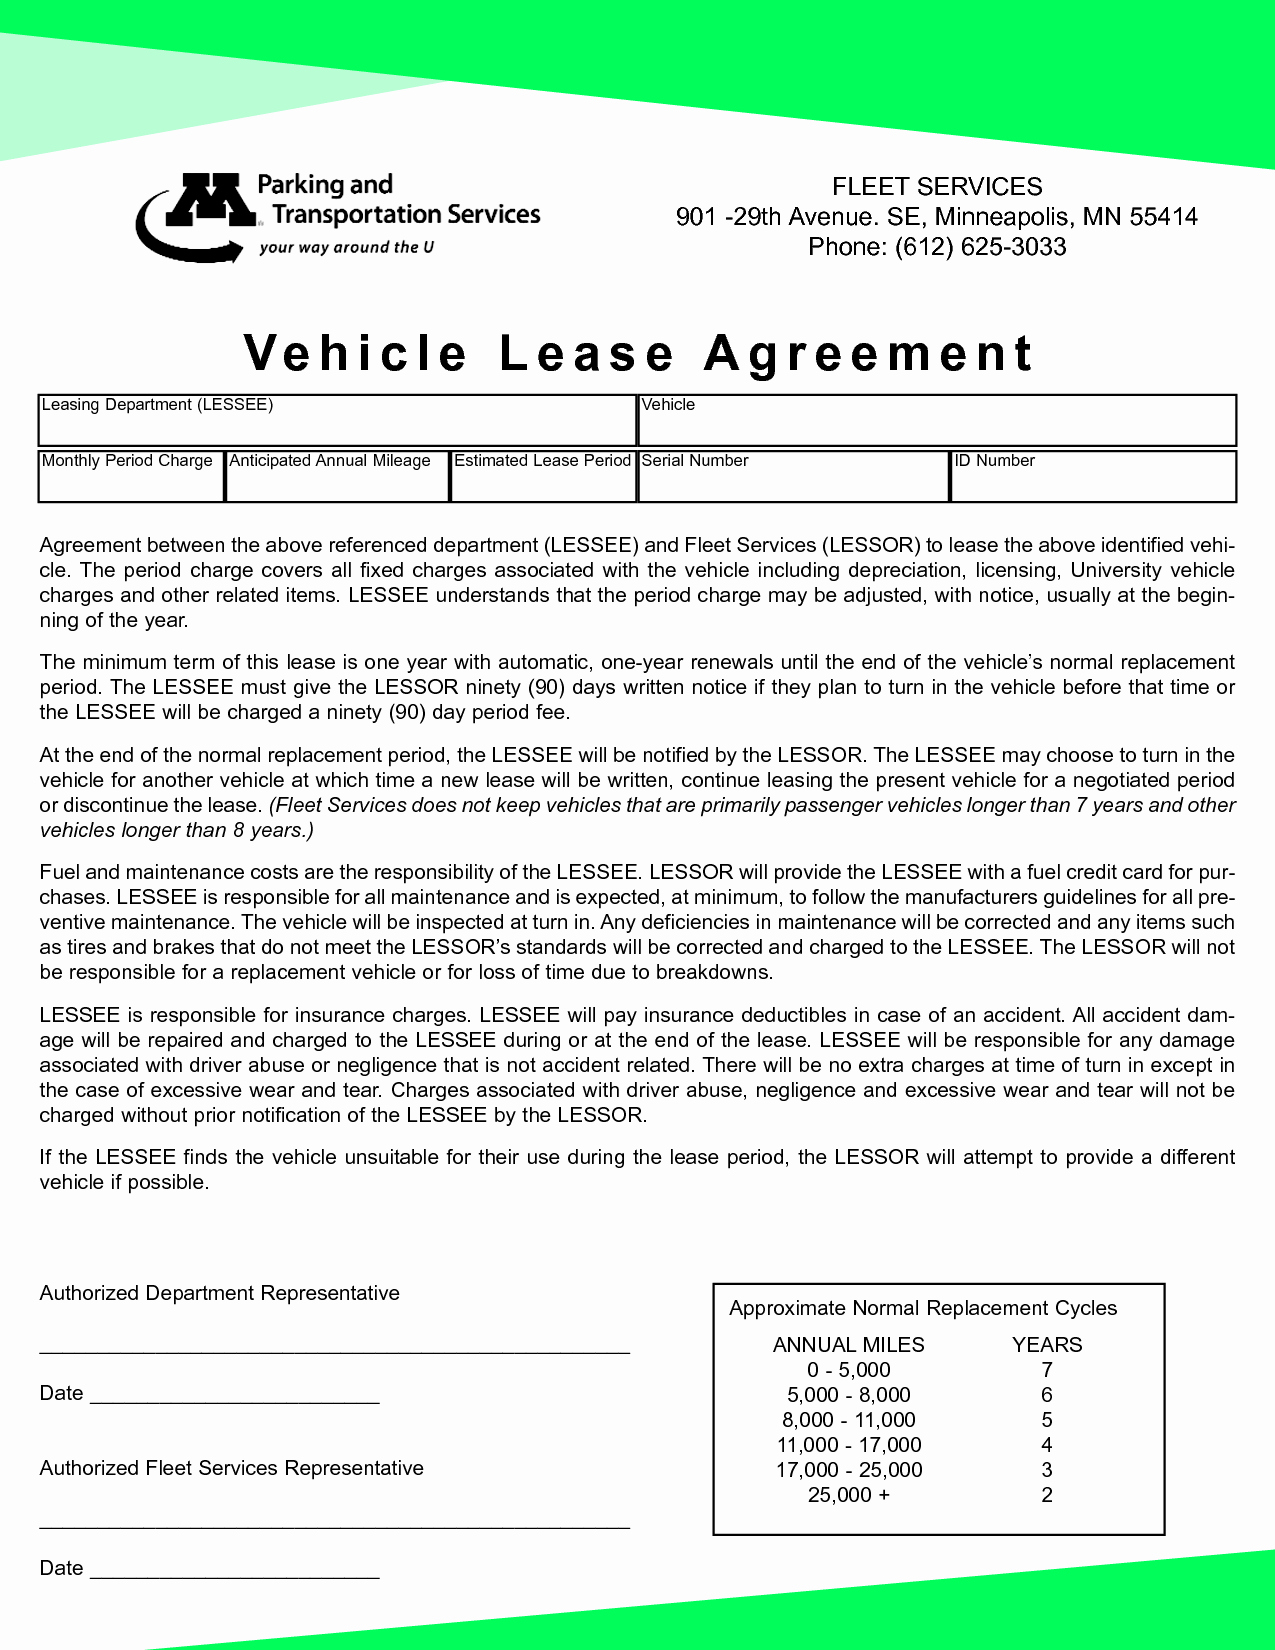 Car Lease Agreement Template Lovely Vehicle Lease Agreement